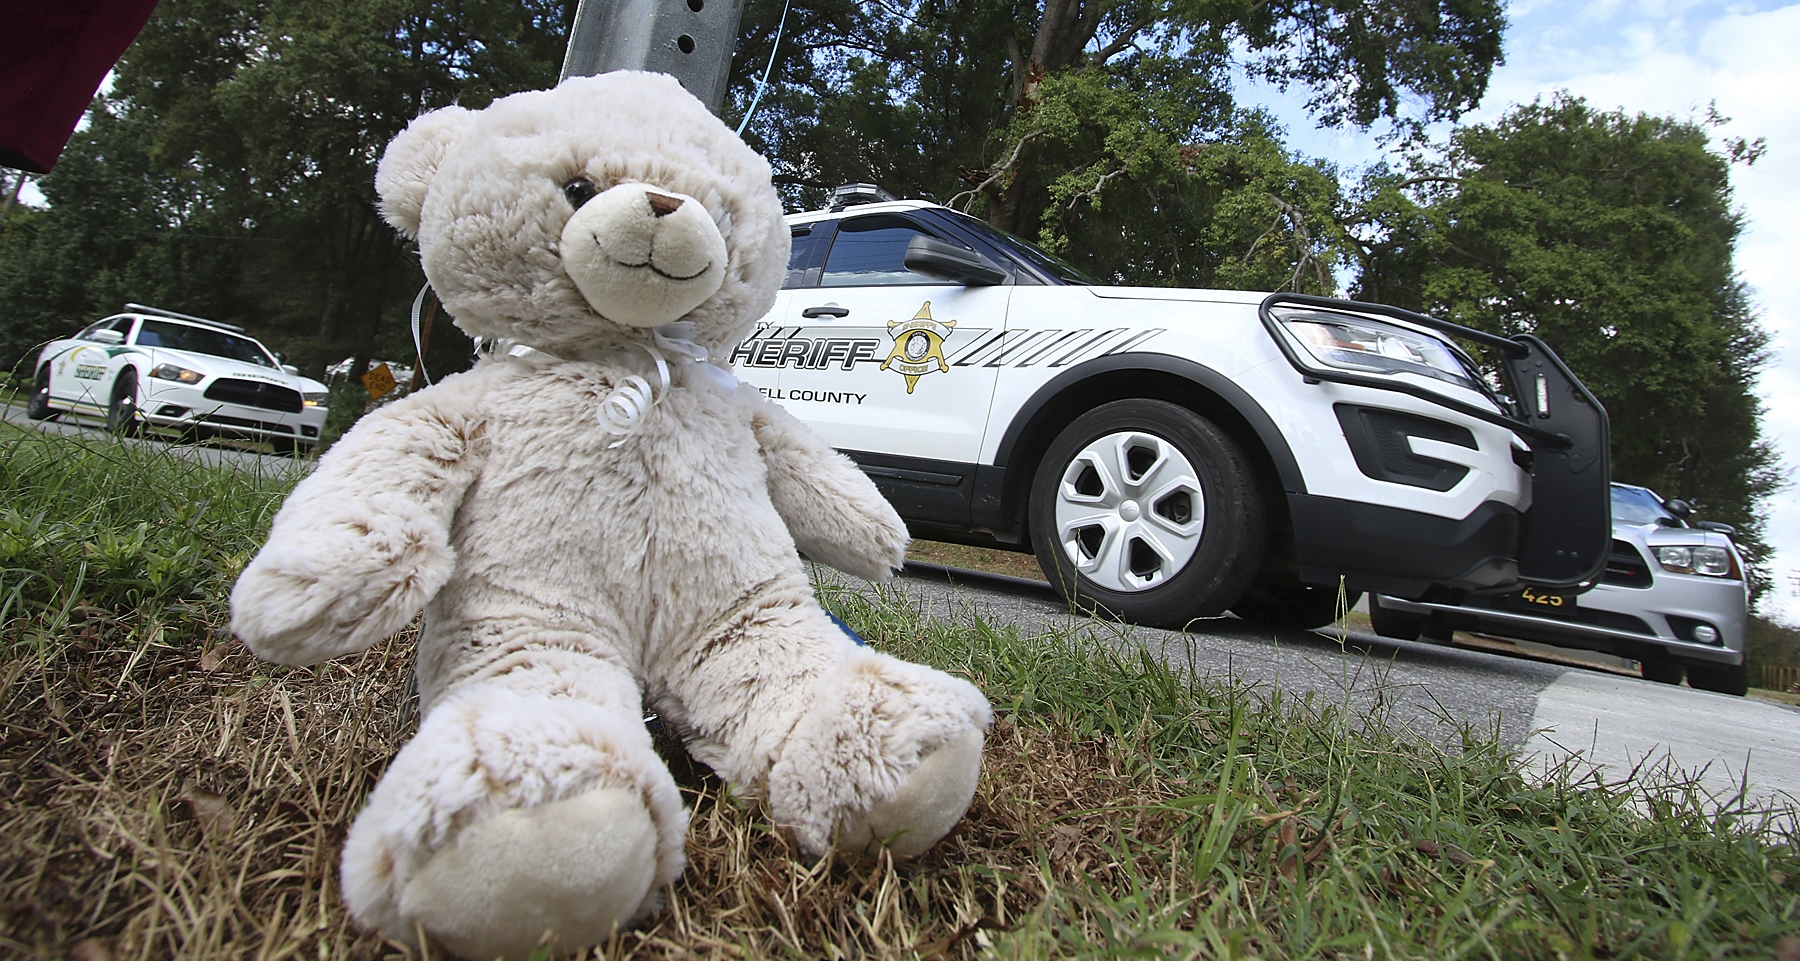 Virginia sheriff's deputies getting trauma-easing plush toys